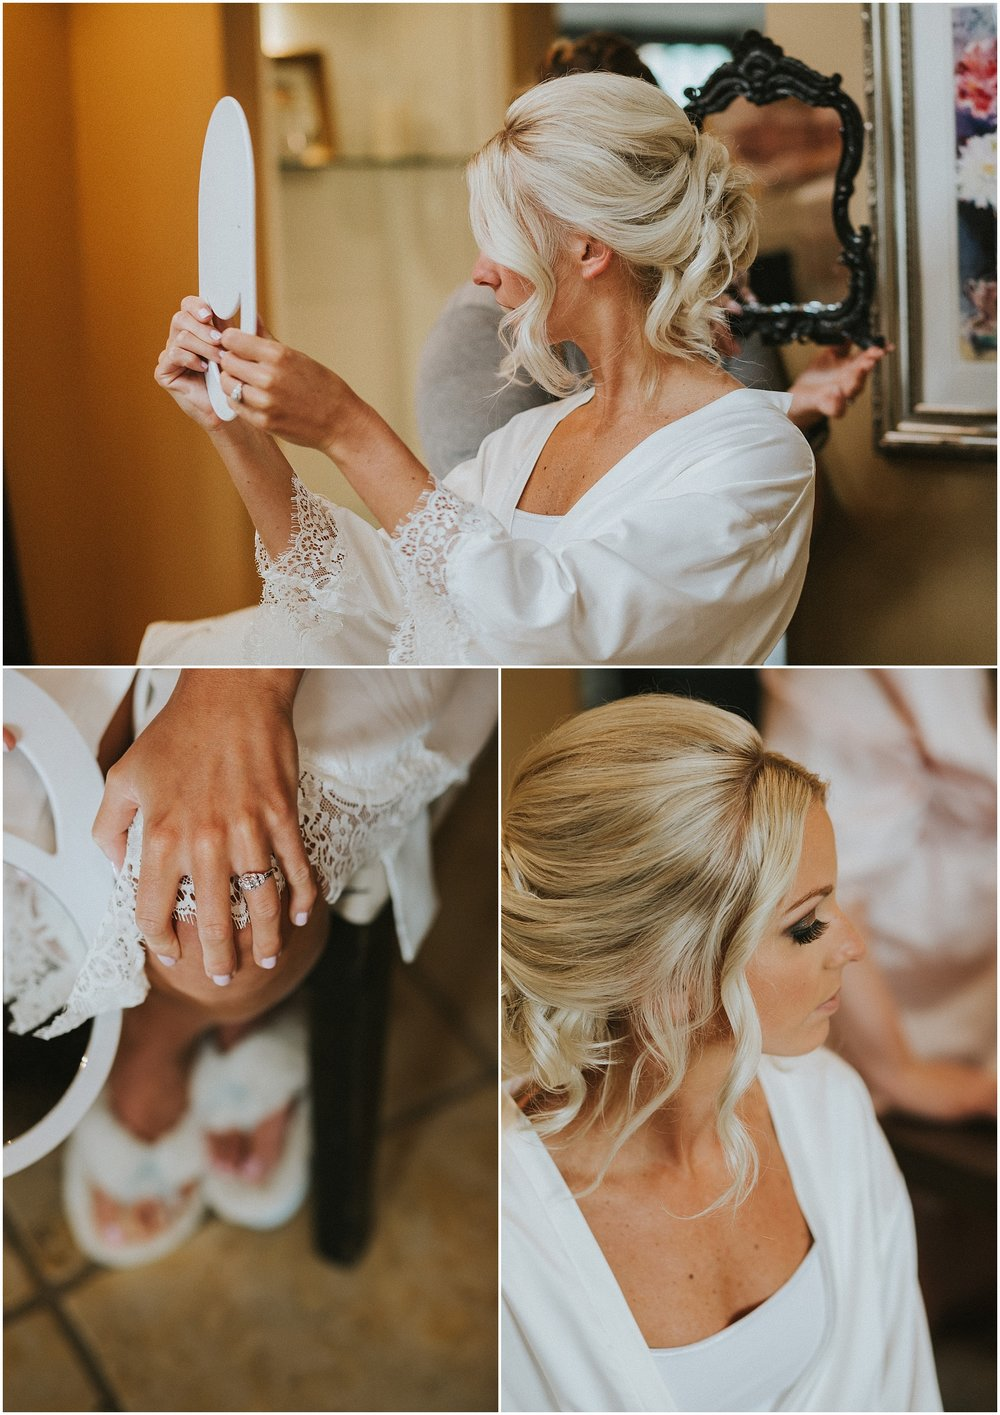 Bride enjoys getting ready for her wedding in historic farmhouse at The Historic Acres of Hershey in Hershey, Pennsylvania